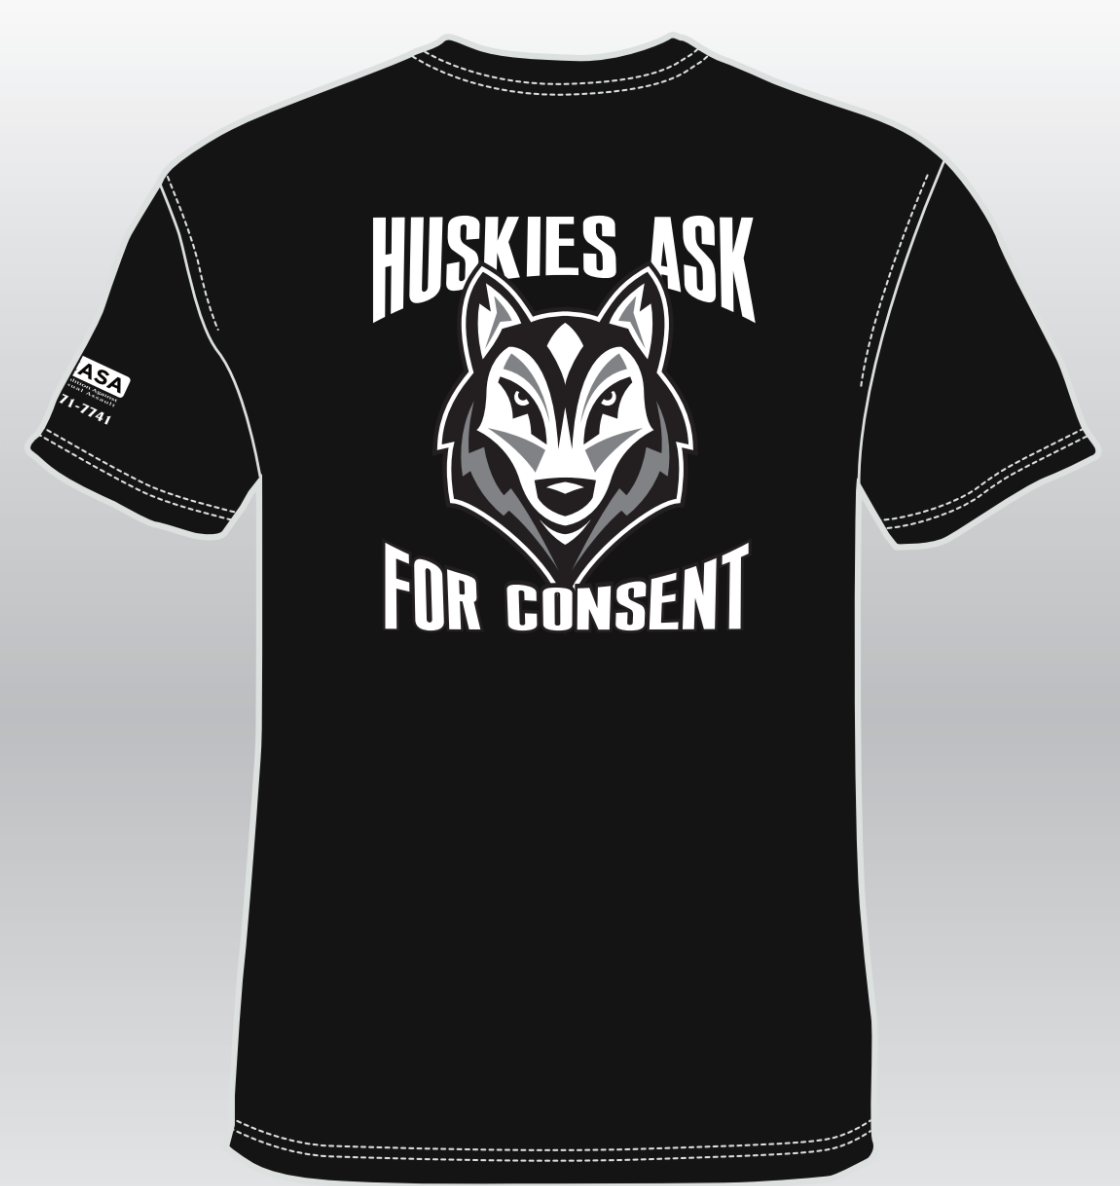 Huskies Ask For Consent Tshirt